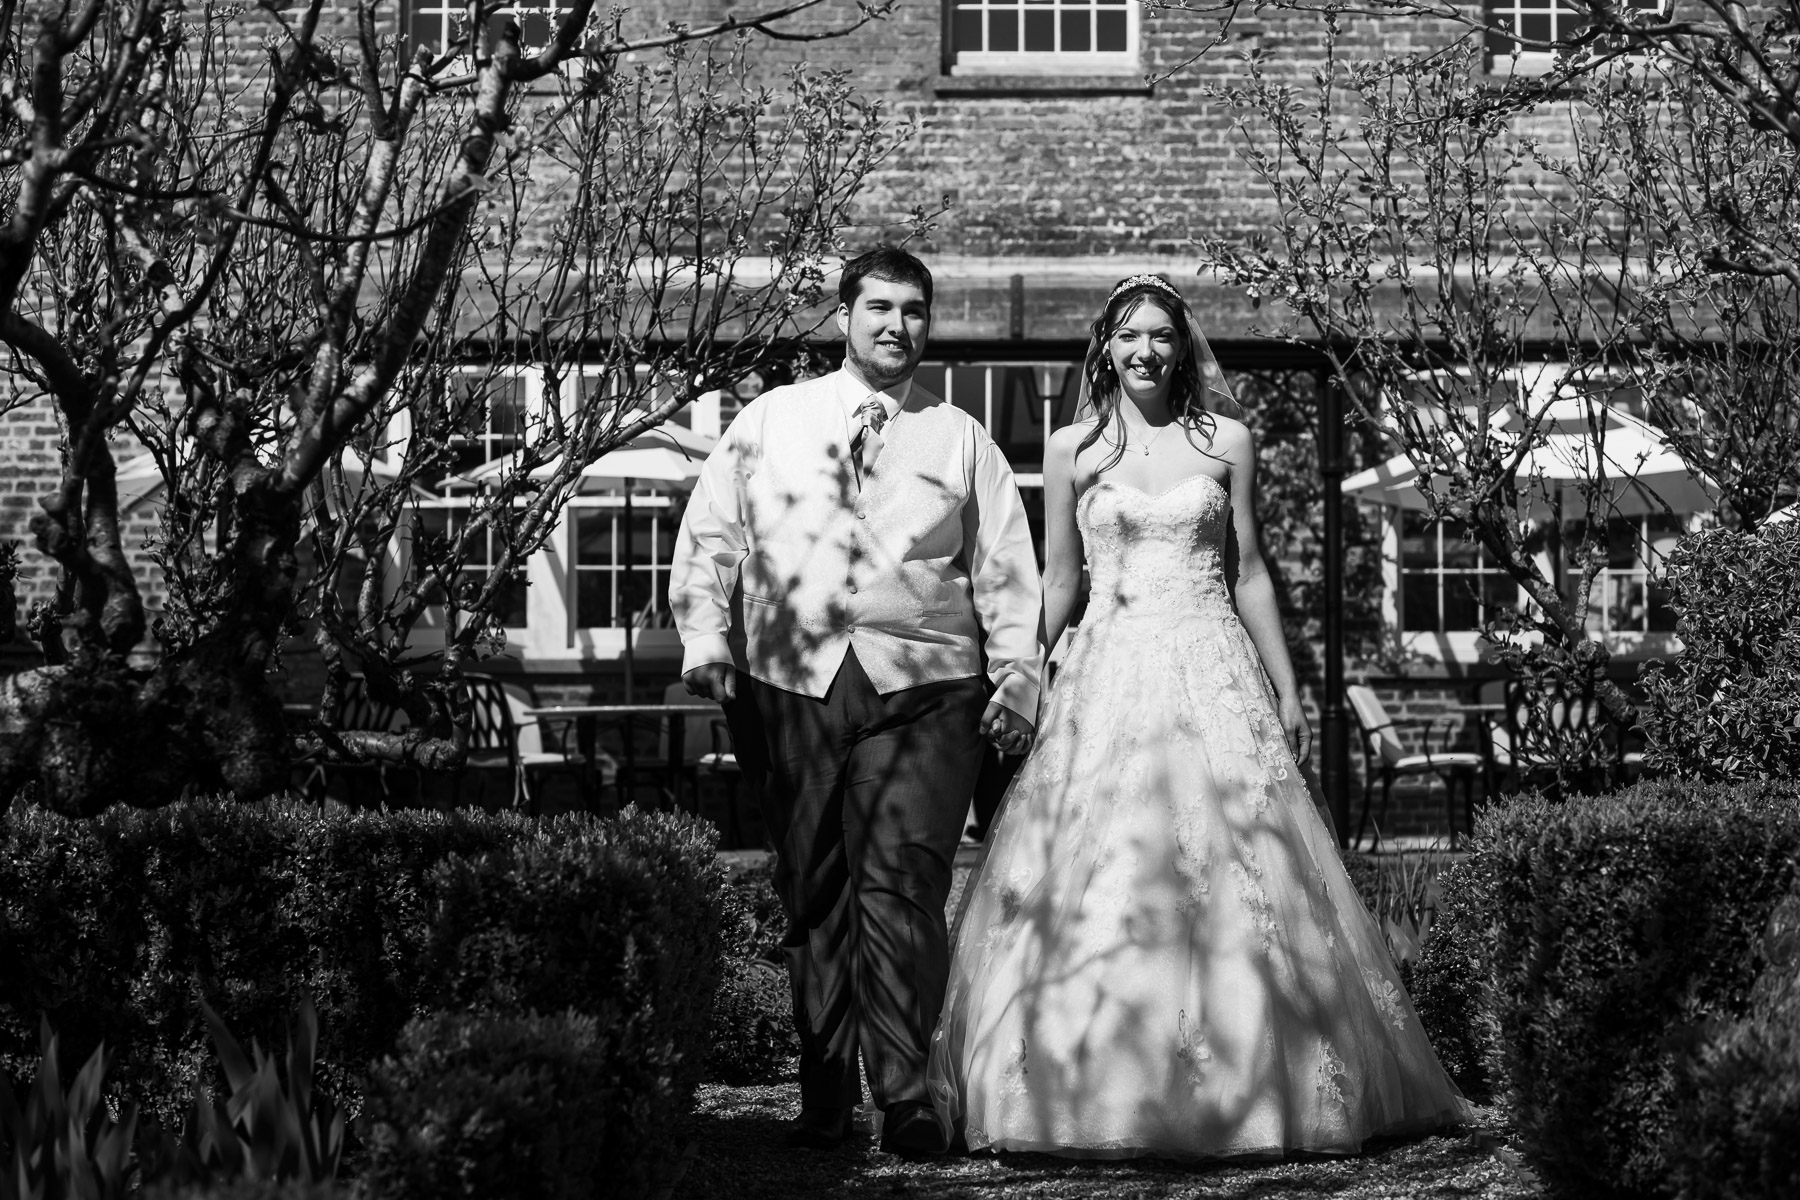 Black and white photo of bride and groom arriving